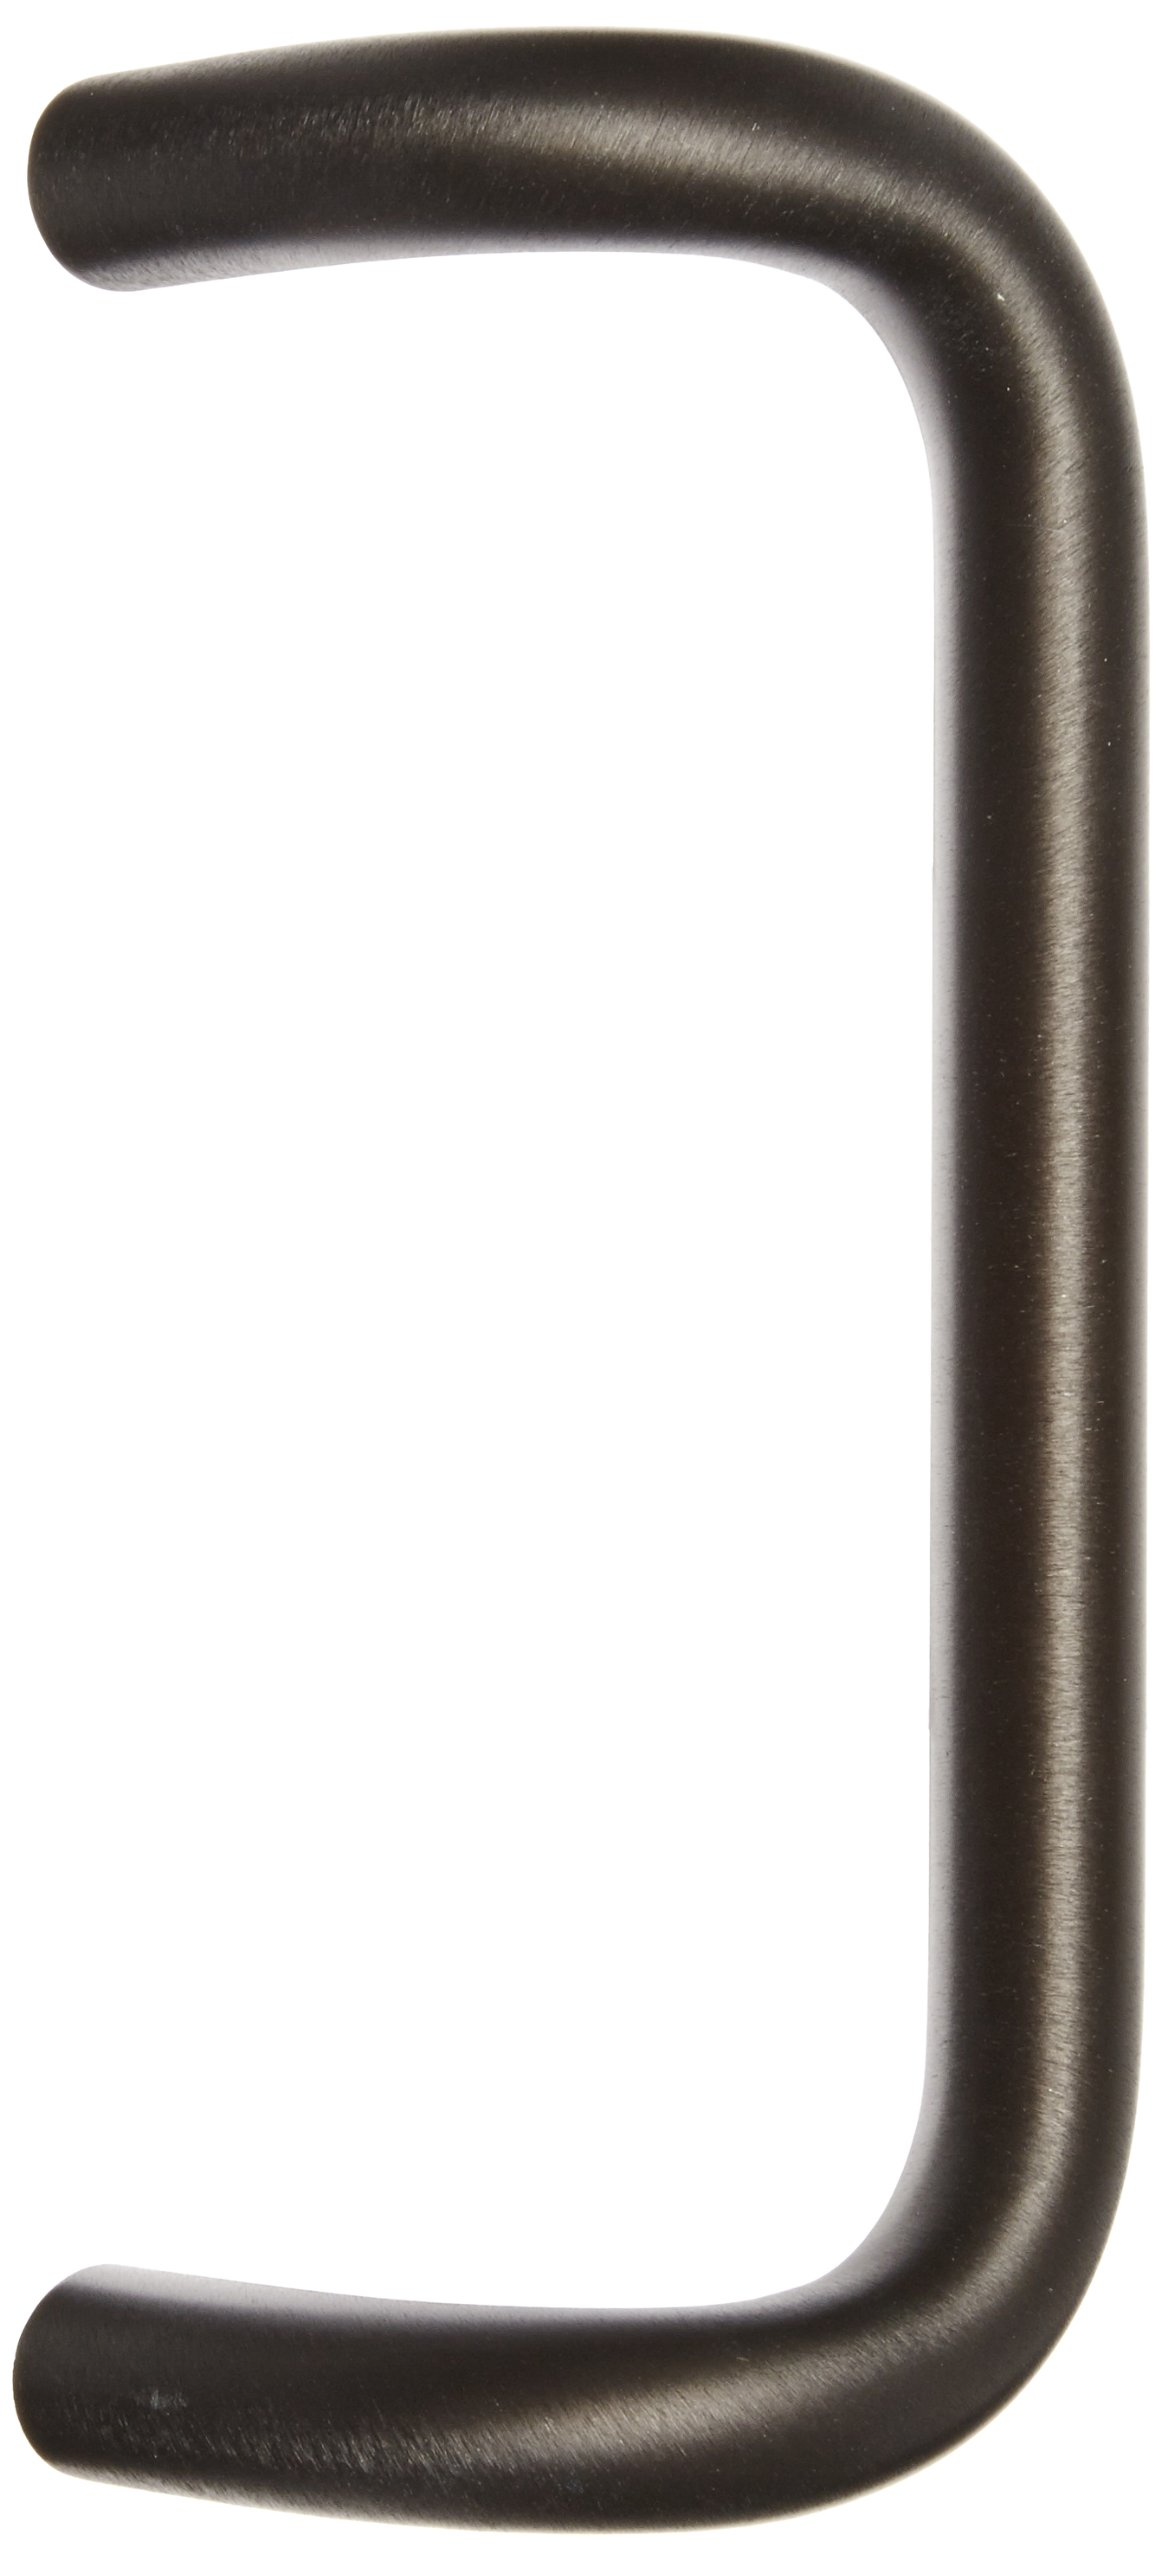 Rockwood BF157.314 Aluminum 90-Degree Offset Door Pull, 1'' Diameter x 10'' Center-to-Center, Through Bolt Mounting for 1-3/4'' Door, Extra Dark Bronze Anodized Finish